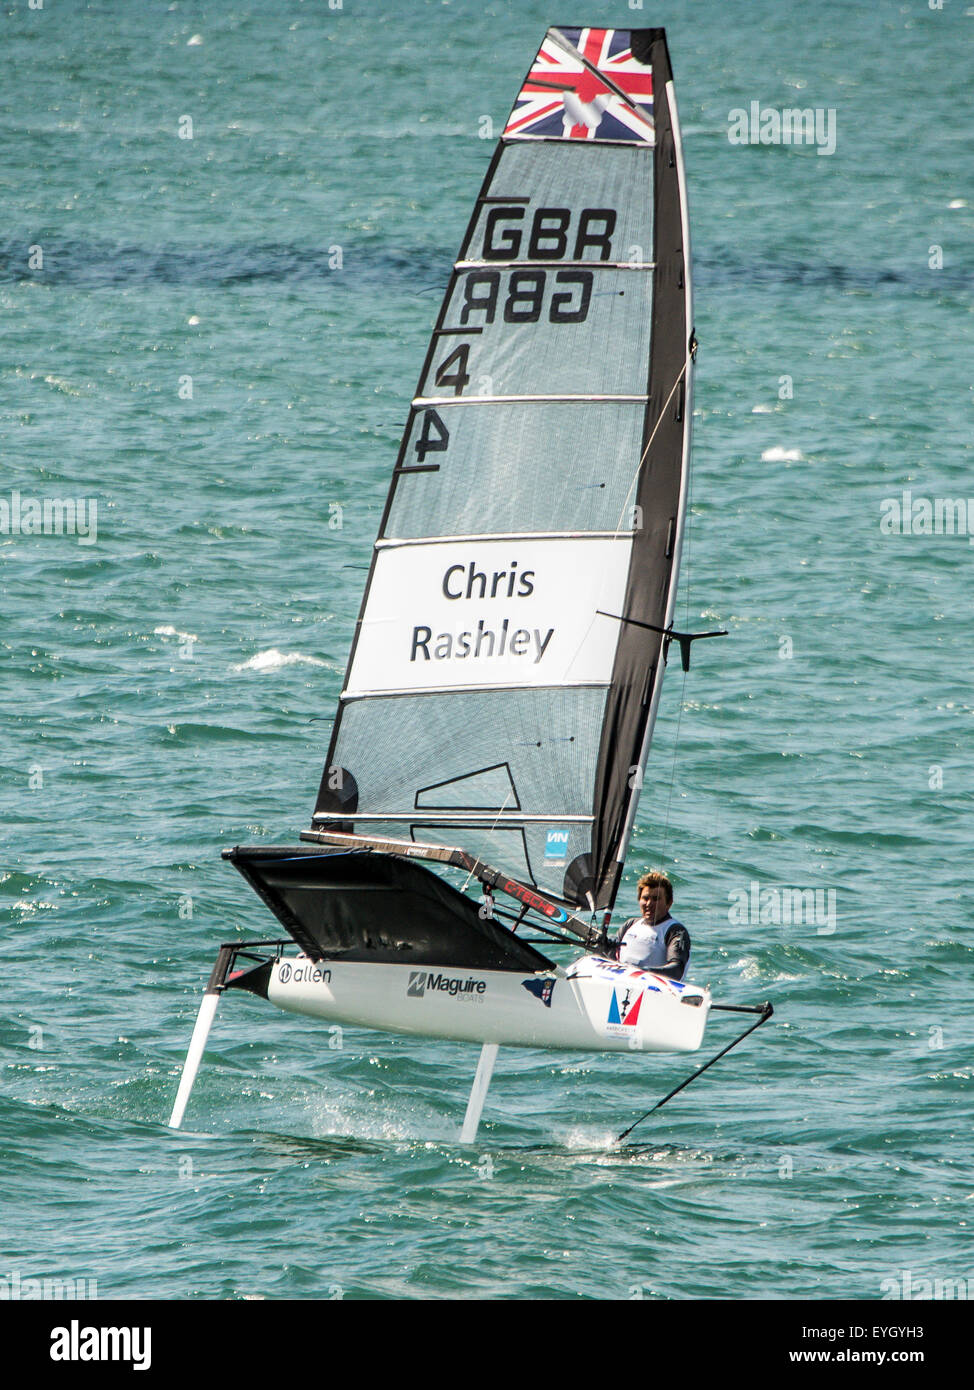 Chris Rashley moth racing for team GBR in the Solent portsmouth - Stock Image